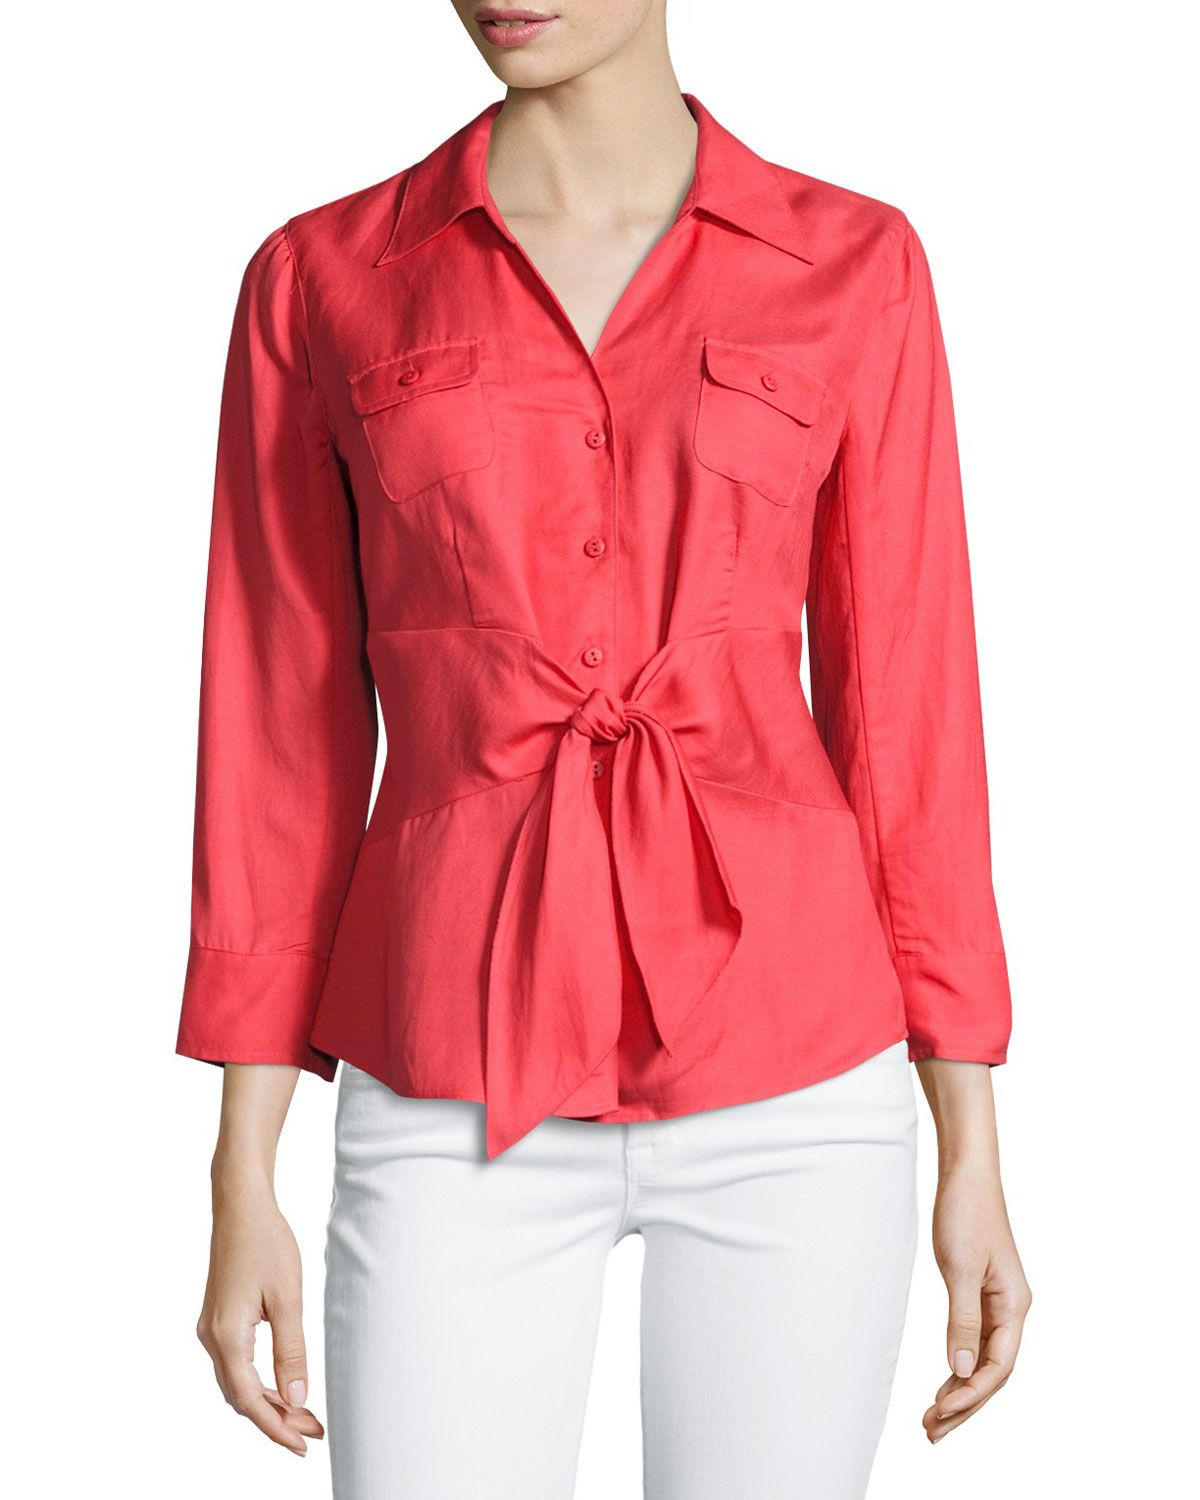 NIC+ZOE Drapey Tie-Front Top, Spiced Rose, Spr